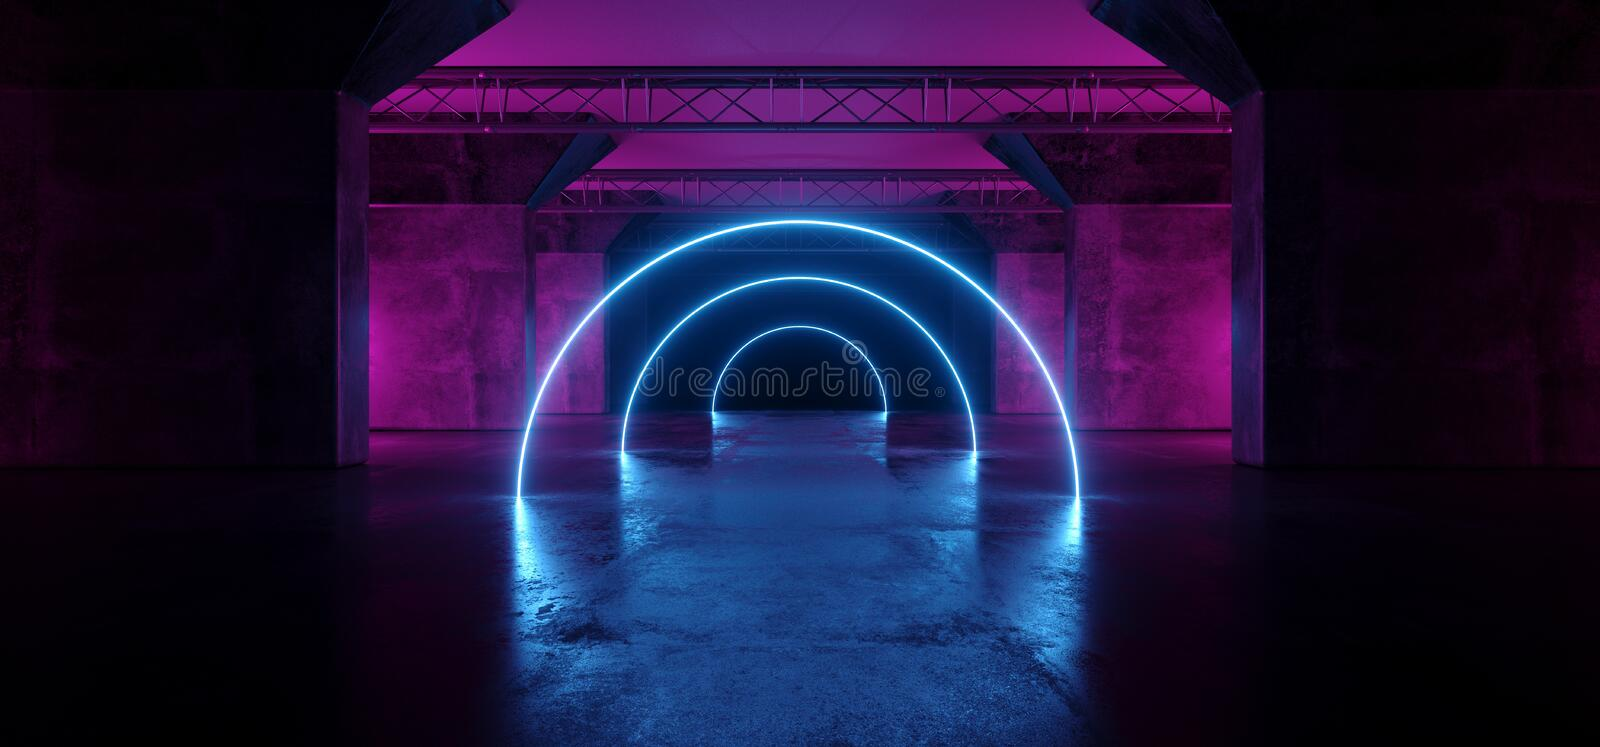 Sci Fi Circle Neon Glowing Fluorescent Laser Alienship Stage Dance Lights Ultraviolet Purple Blue Pink In Dark Empty Grunge. Concrete Neon Reflective Tunnel stock illustration